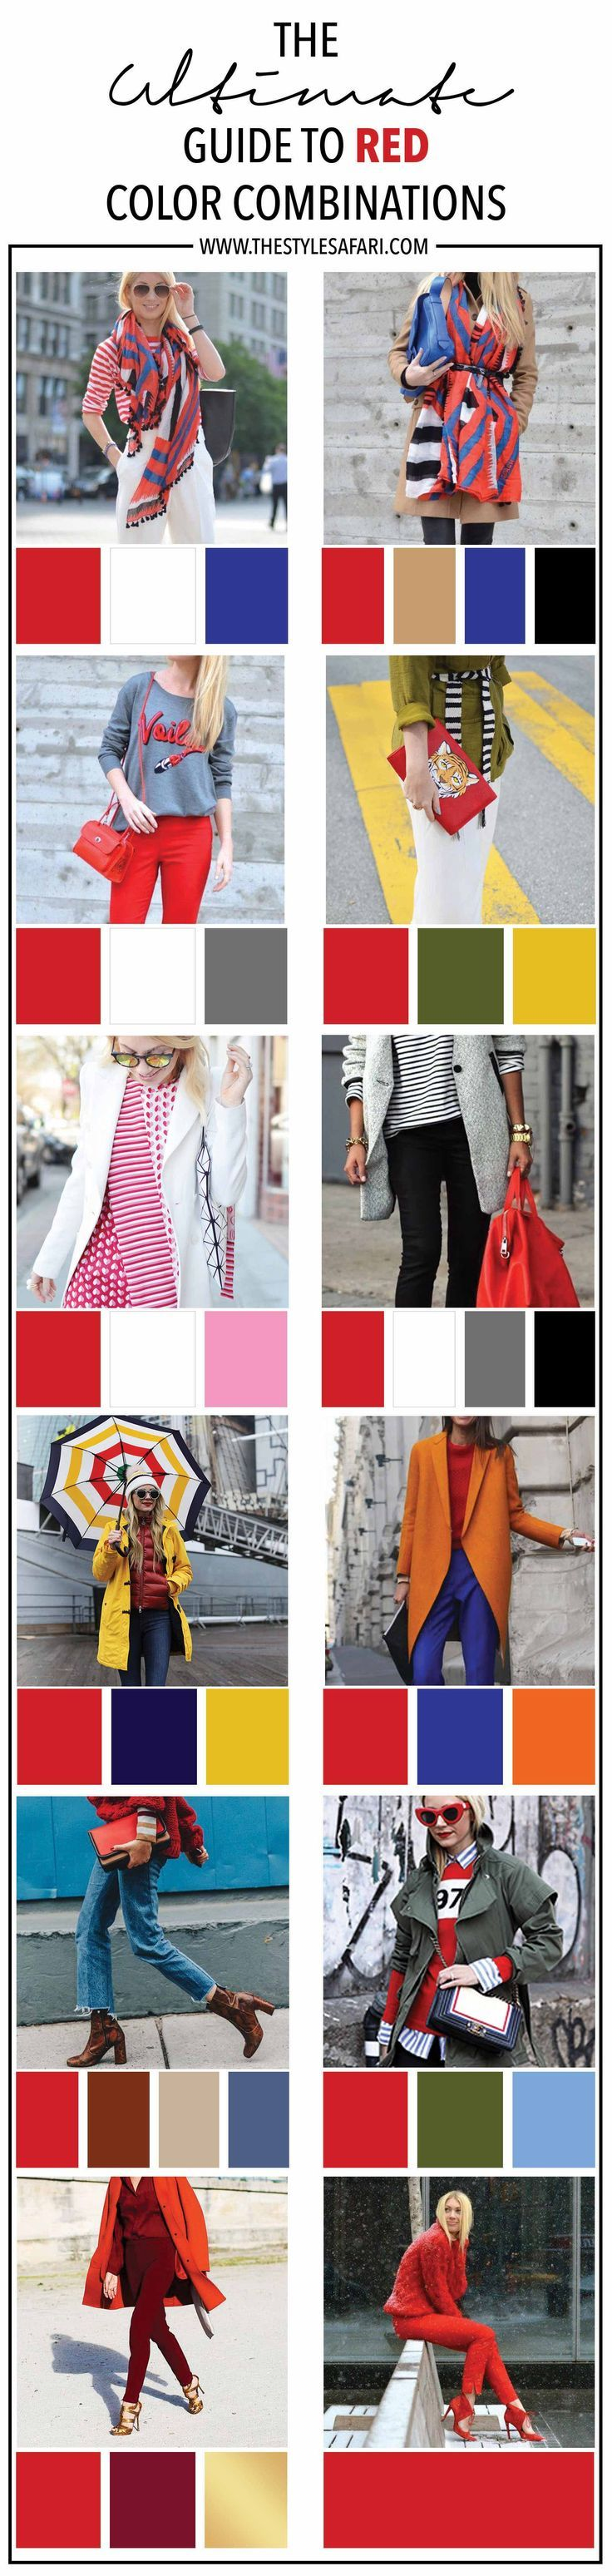 Styling Tips The Ultimate Guide To Red Color Combinations Thestylesafari Red Color Combinations Colour Combinations Fashion Color Combos Outfit